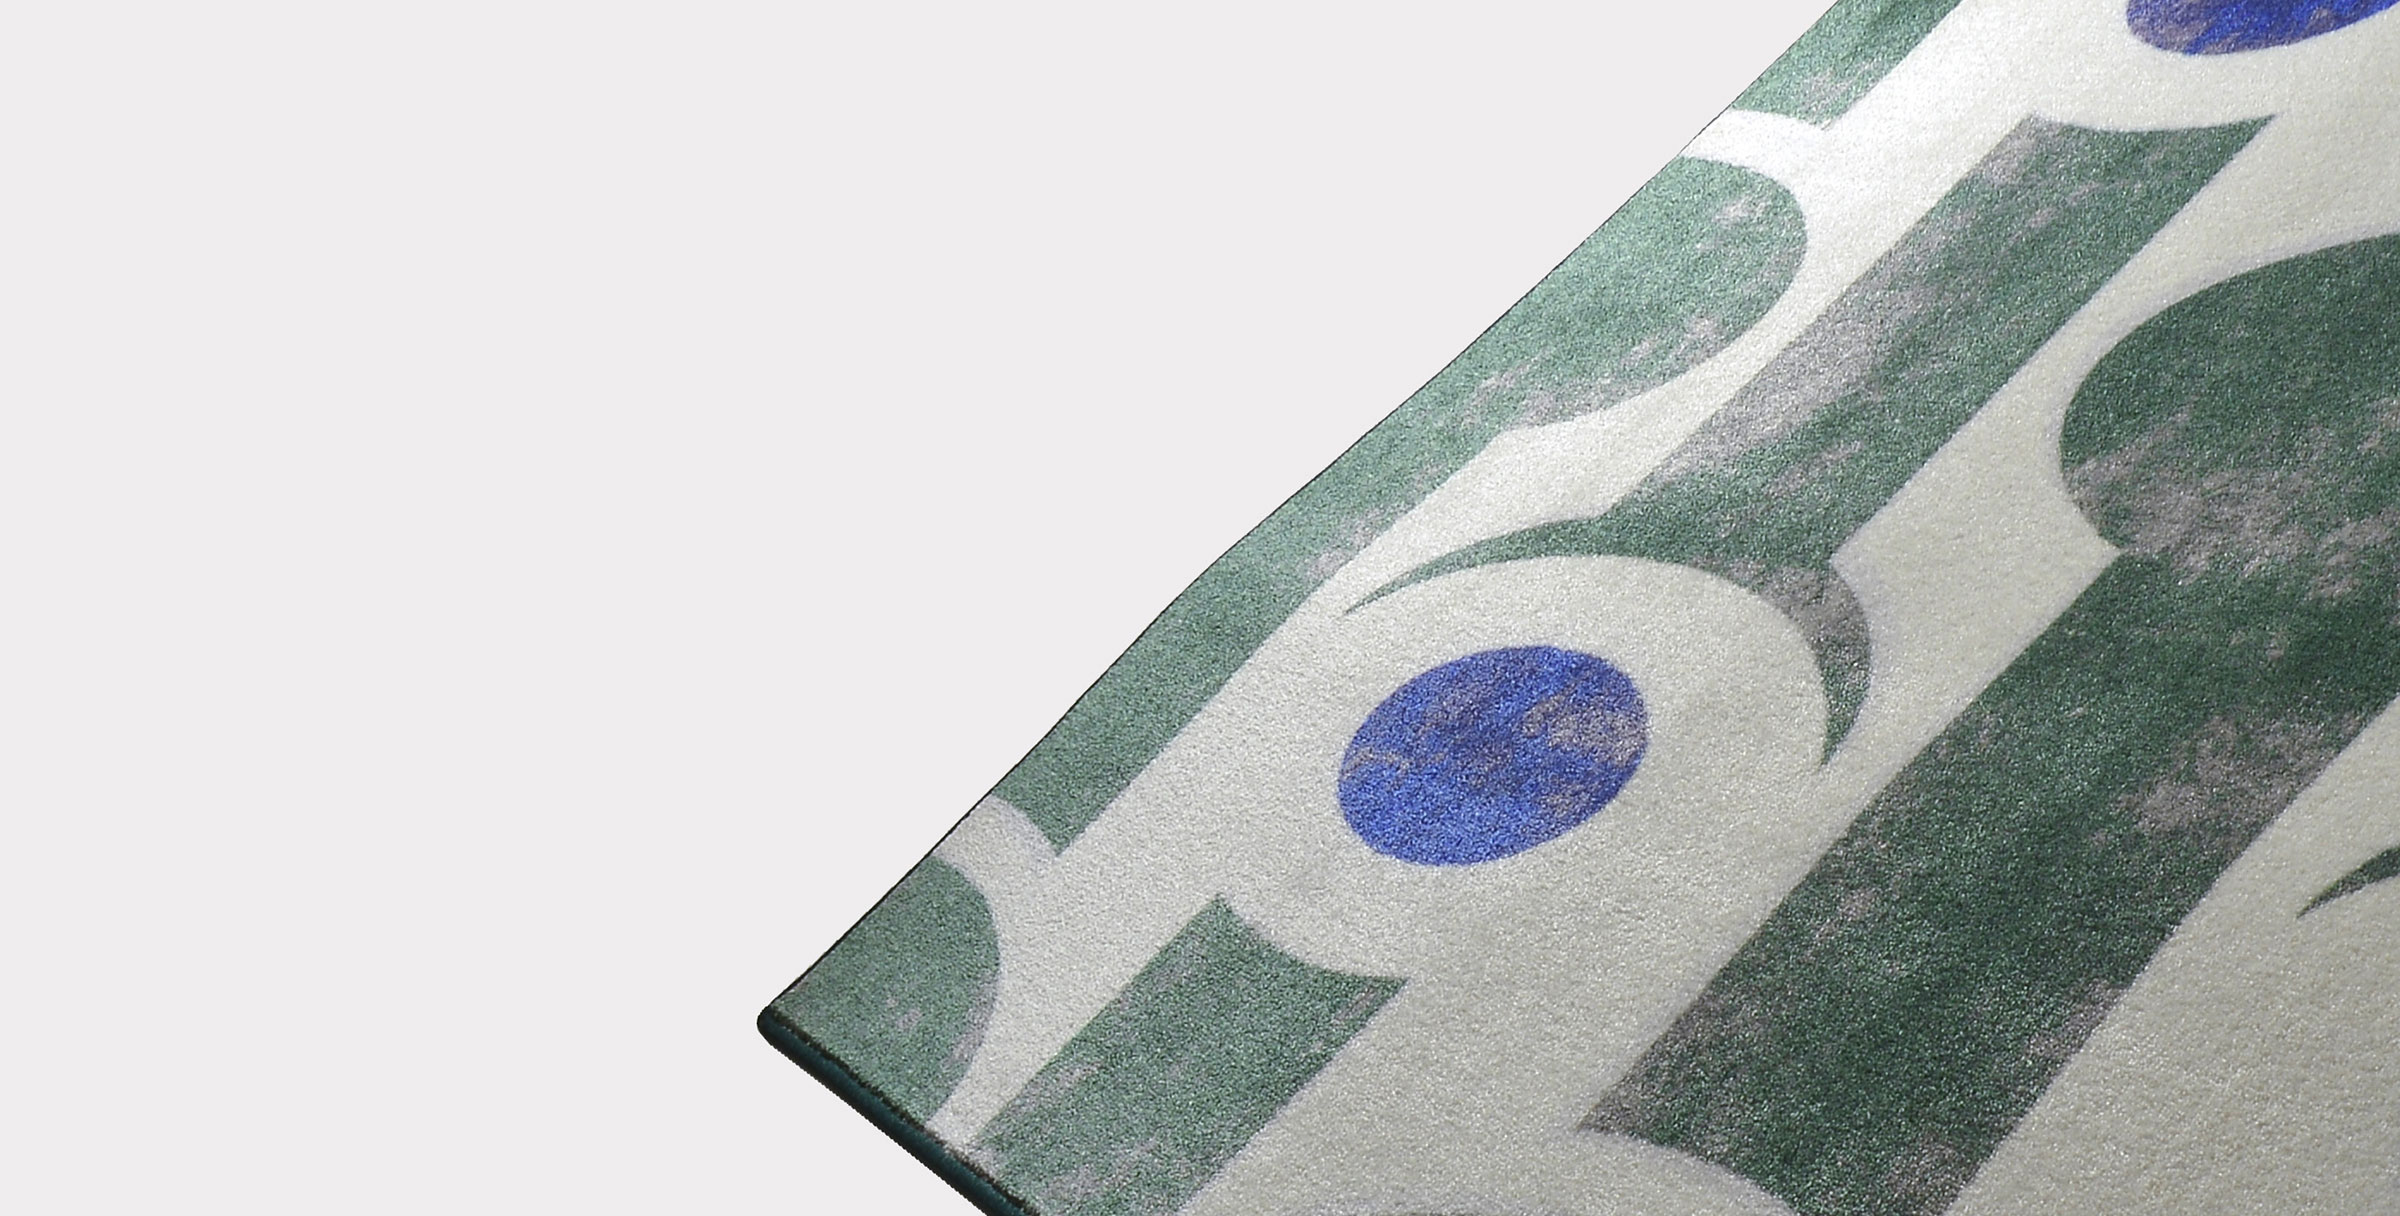 Textile and rugs abstract verde loopo milano design FD